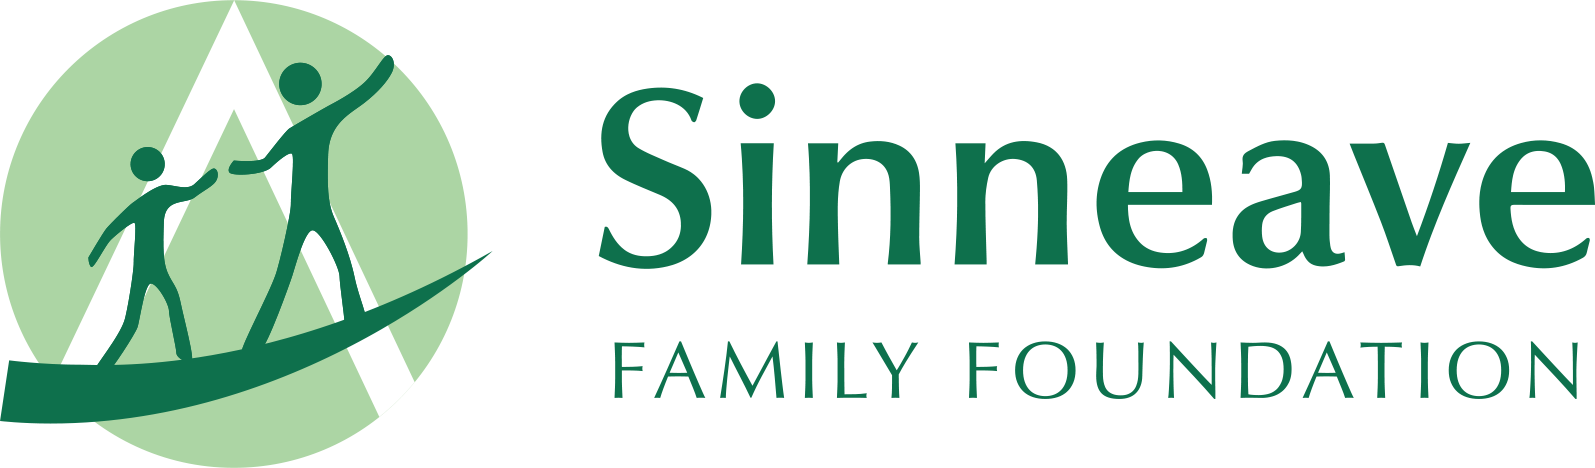 sinneave_family_foundation_logo.png